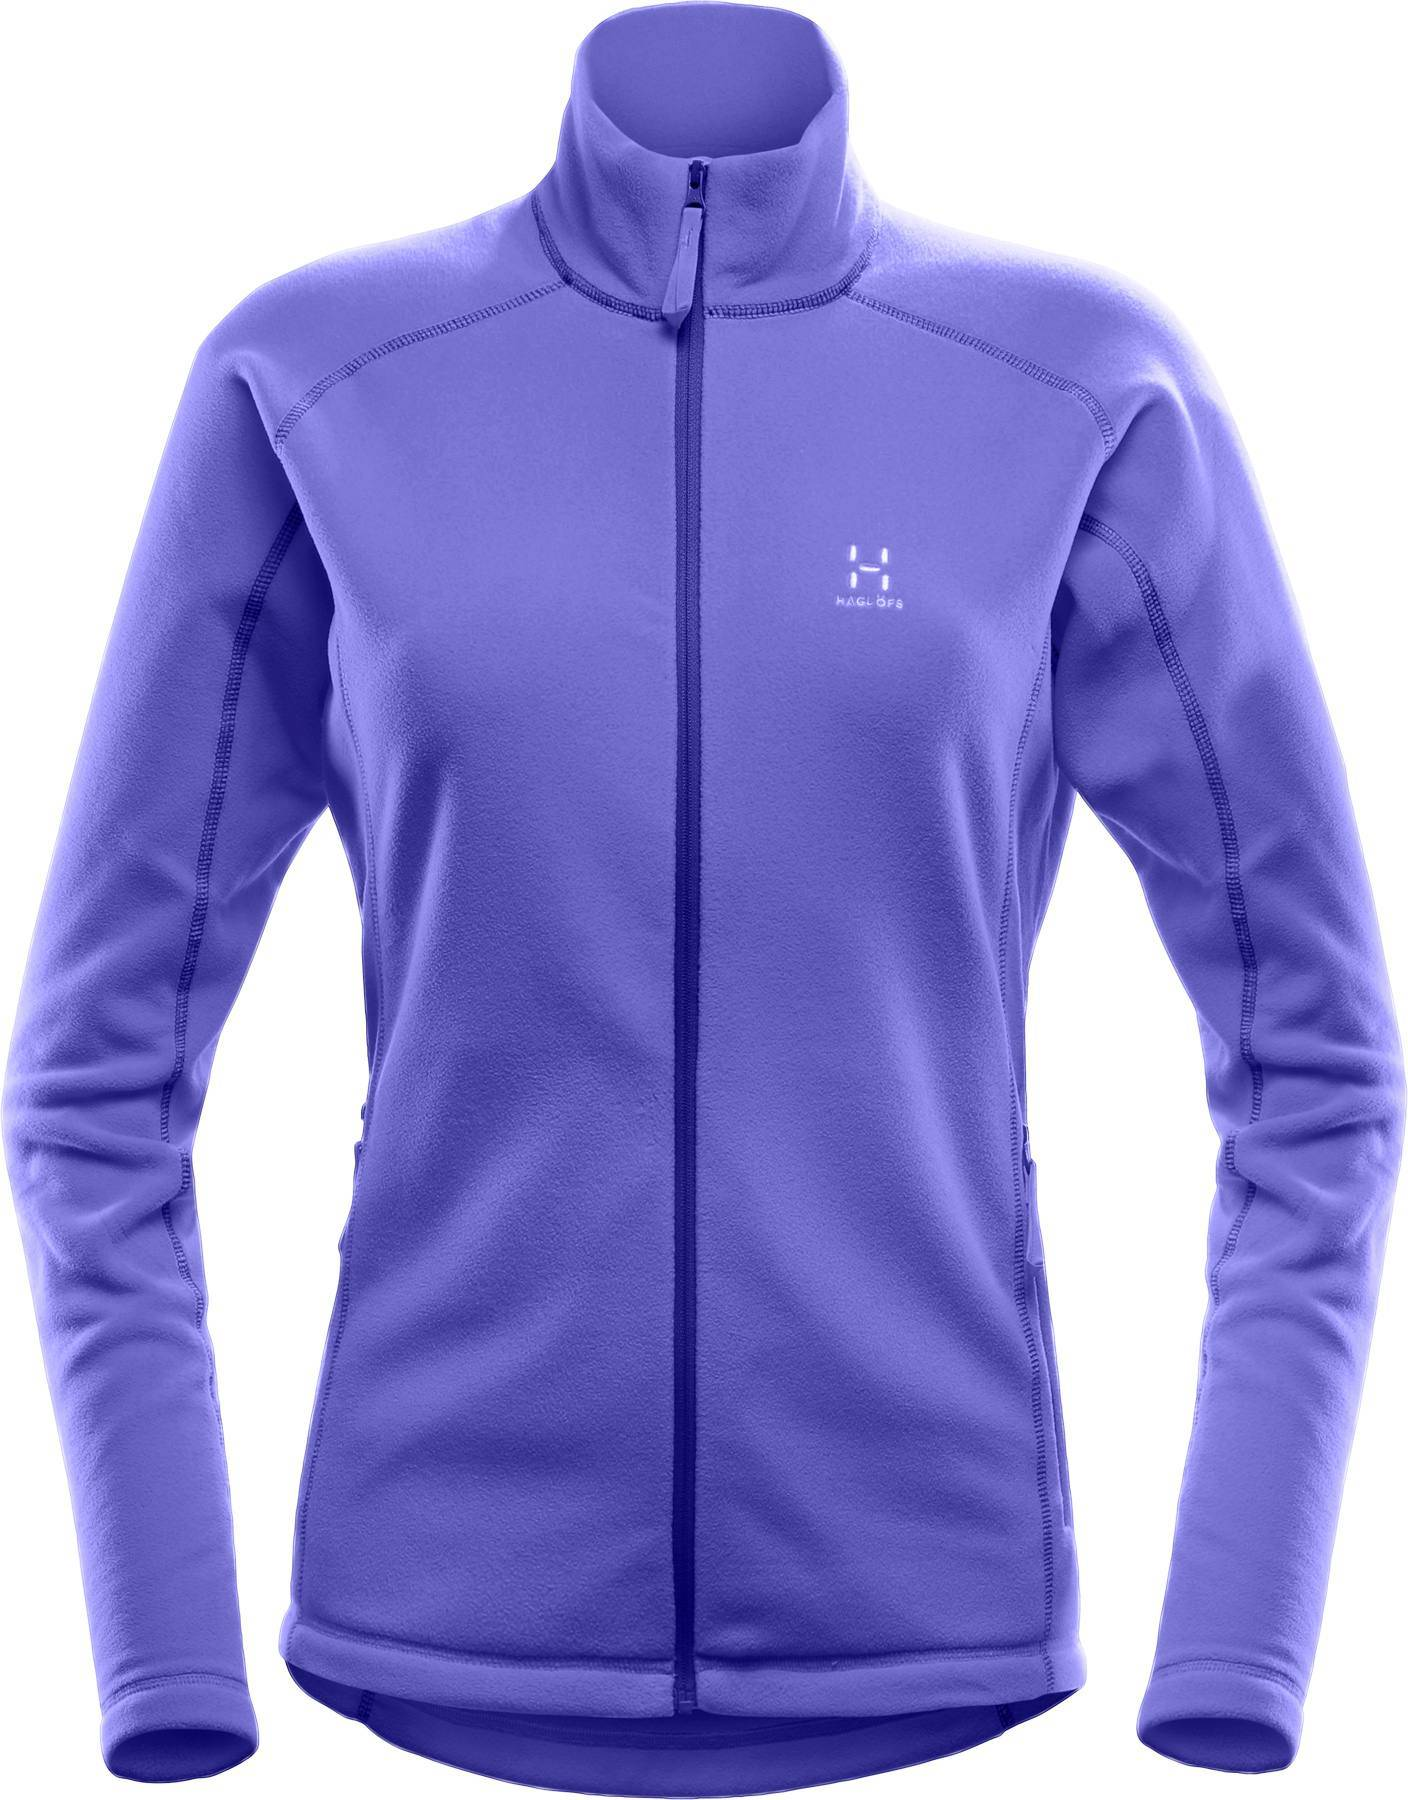 Haglöfs Astro II Jacket Women Purple M